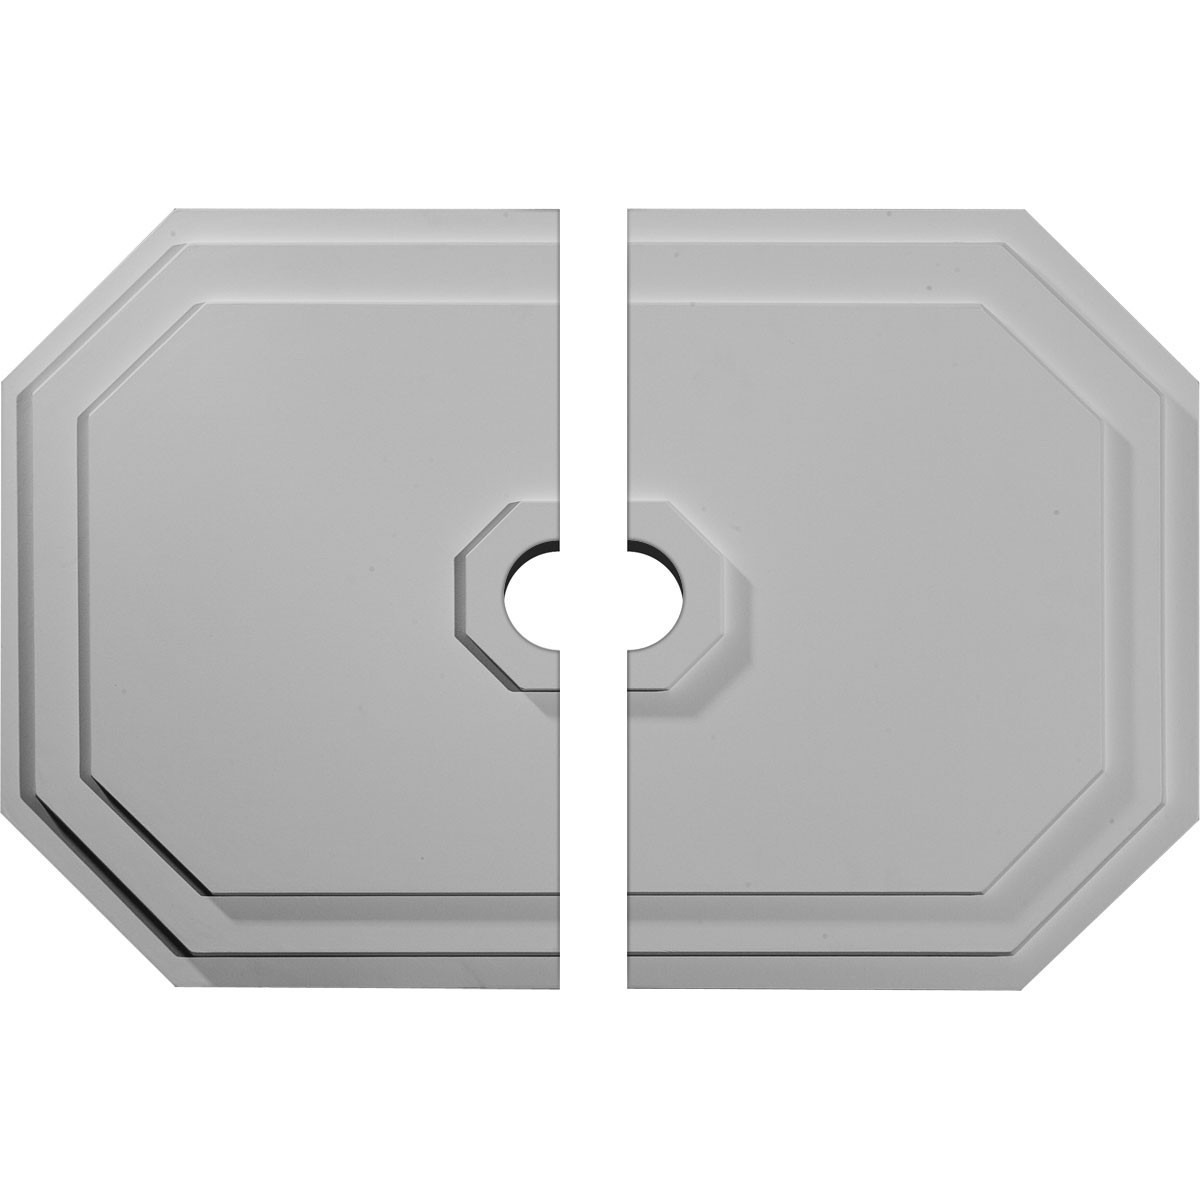 """EM-CM25FE2-03500 - 25 1/4""""W x 17 1/4""""H x 3 1/2""""ID x 1 3/4""""P Felix Ceiling Medallion, Two Piece (Fits Canopies up to 3 1/2"""")"""